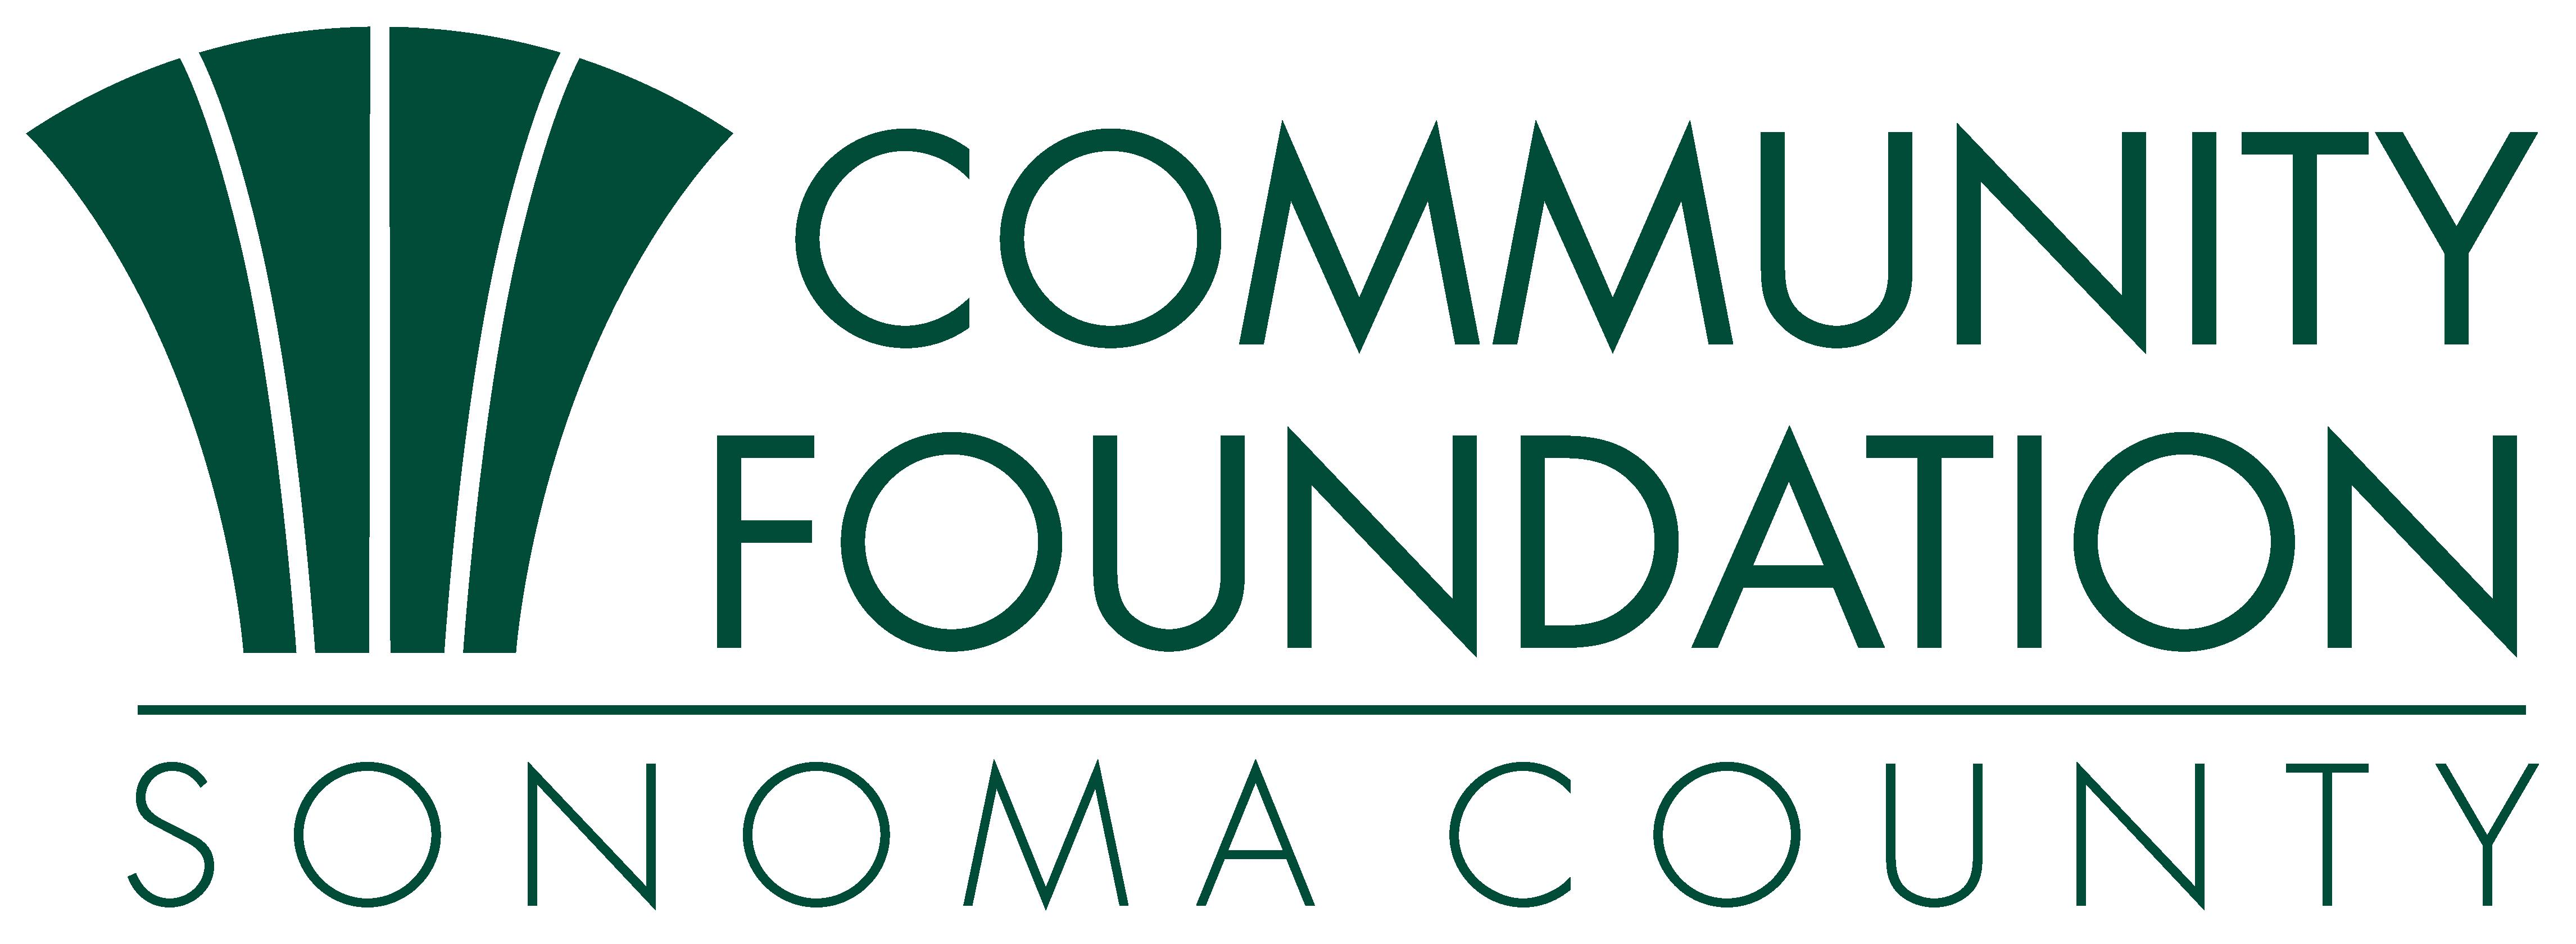 Community Foundation Sonoma County | crowdfunding | online donation website